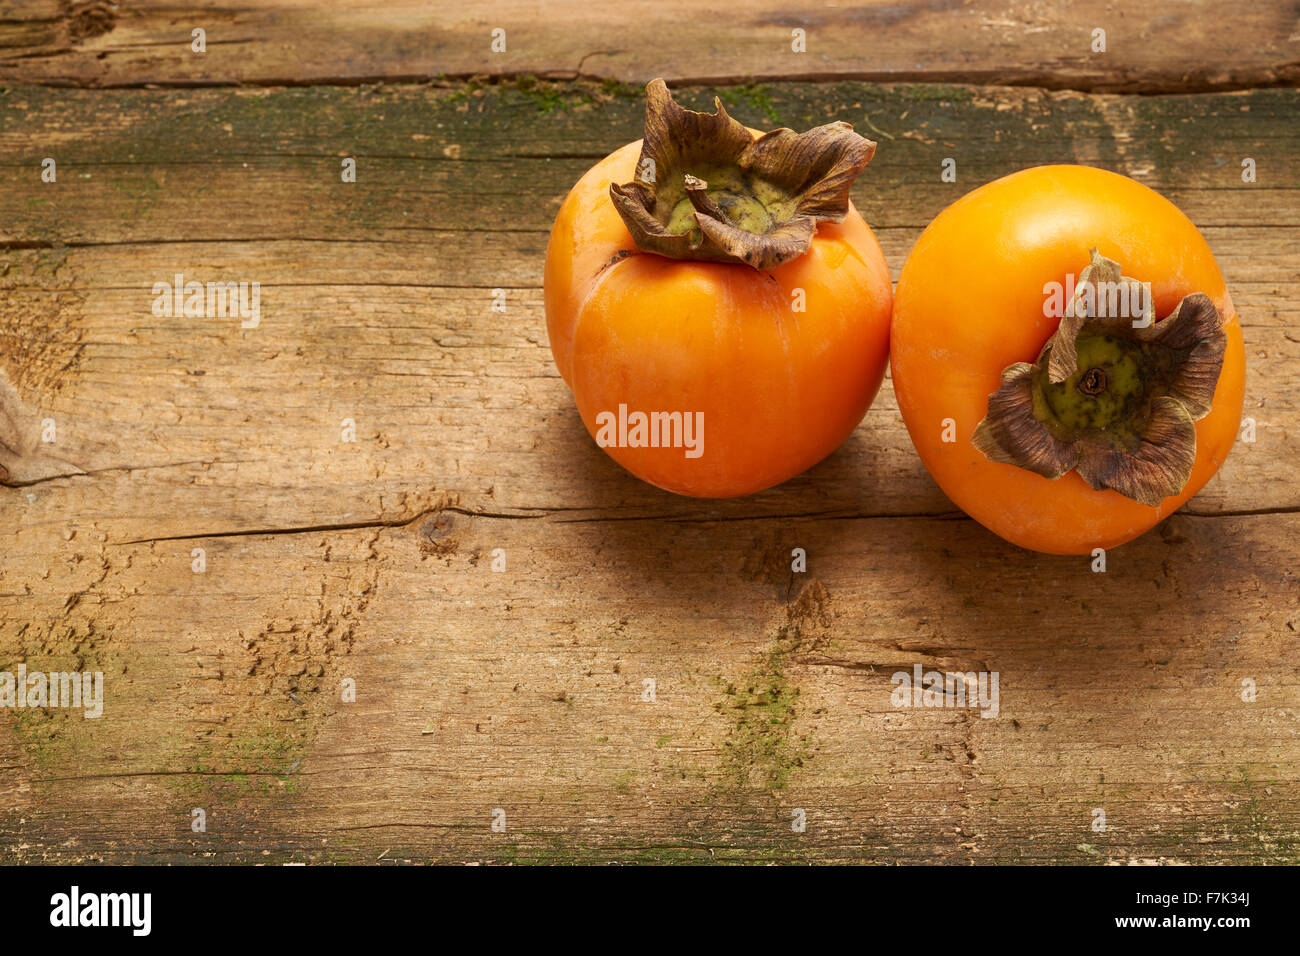 two delicious orange persimmon on an old wooden table Stock Photo